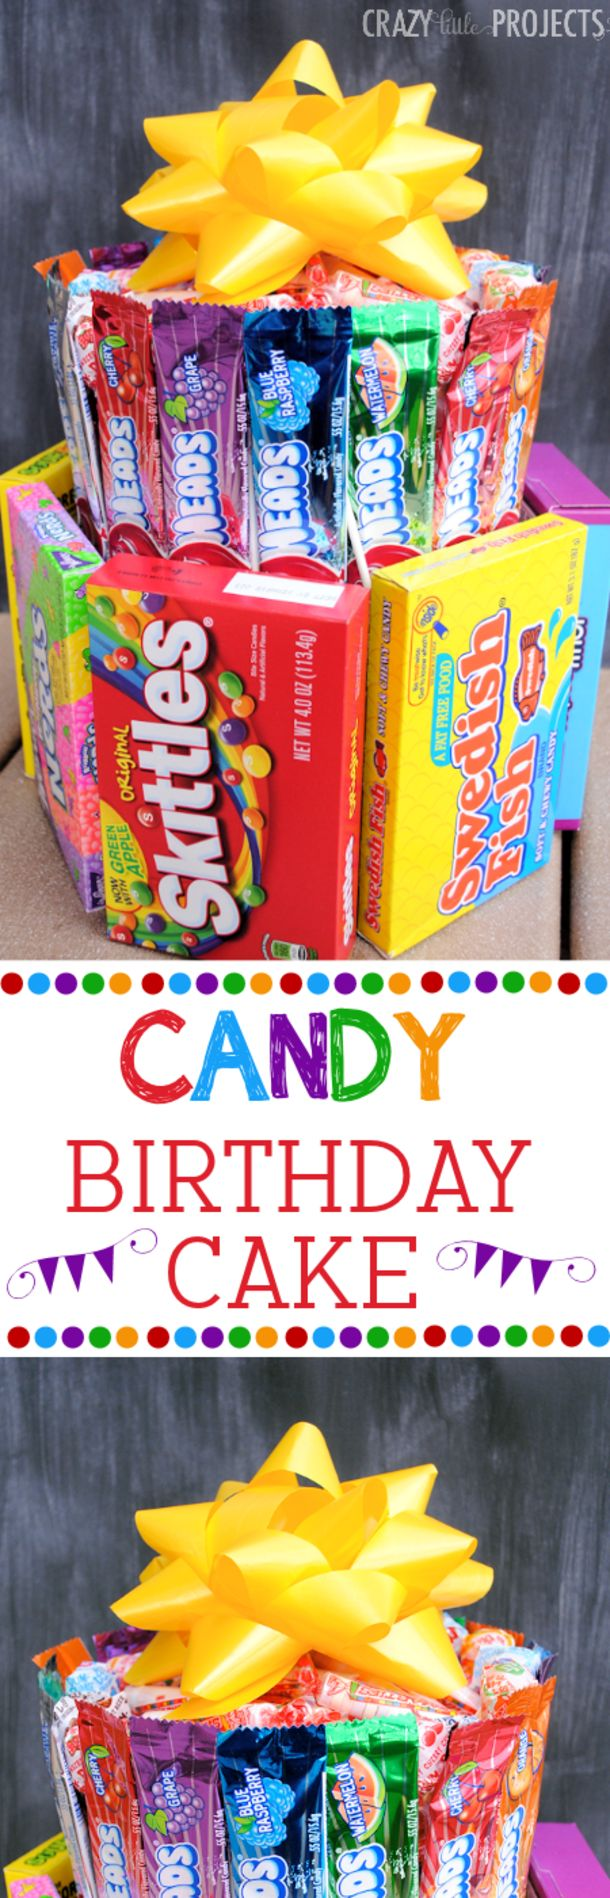 Best 25+ Sweet 16 gifts ideas on Pinterest | 16th birthday gifts ...